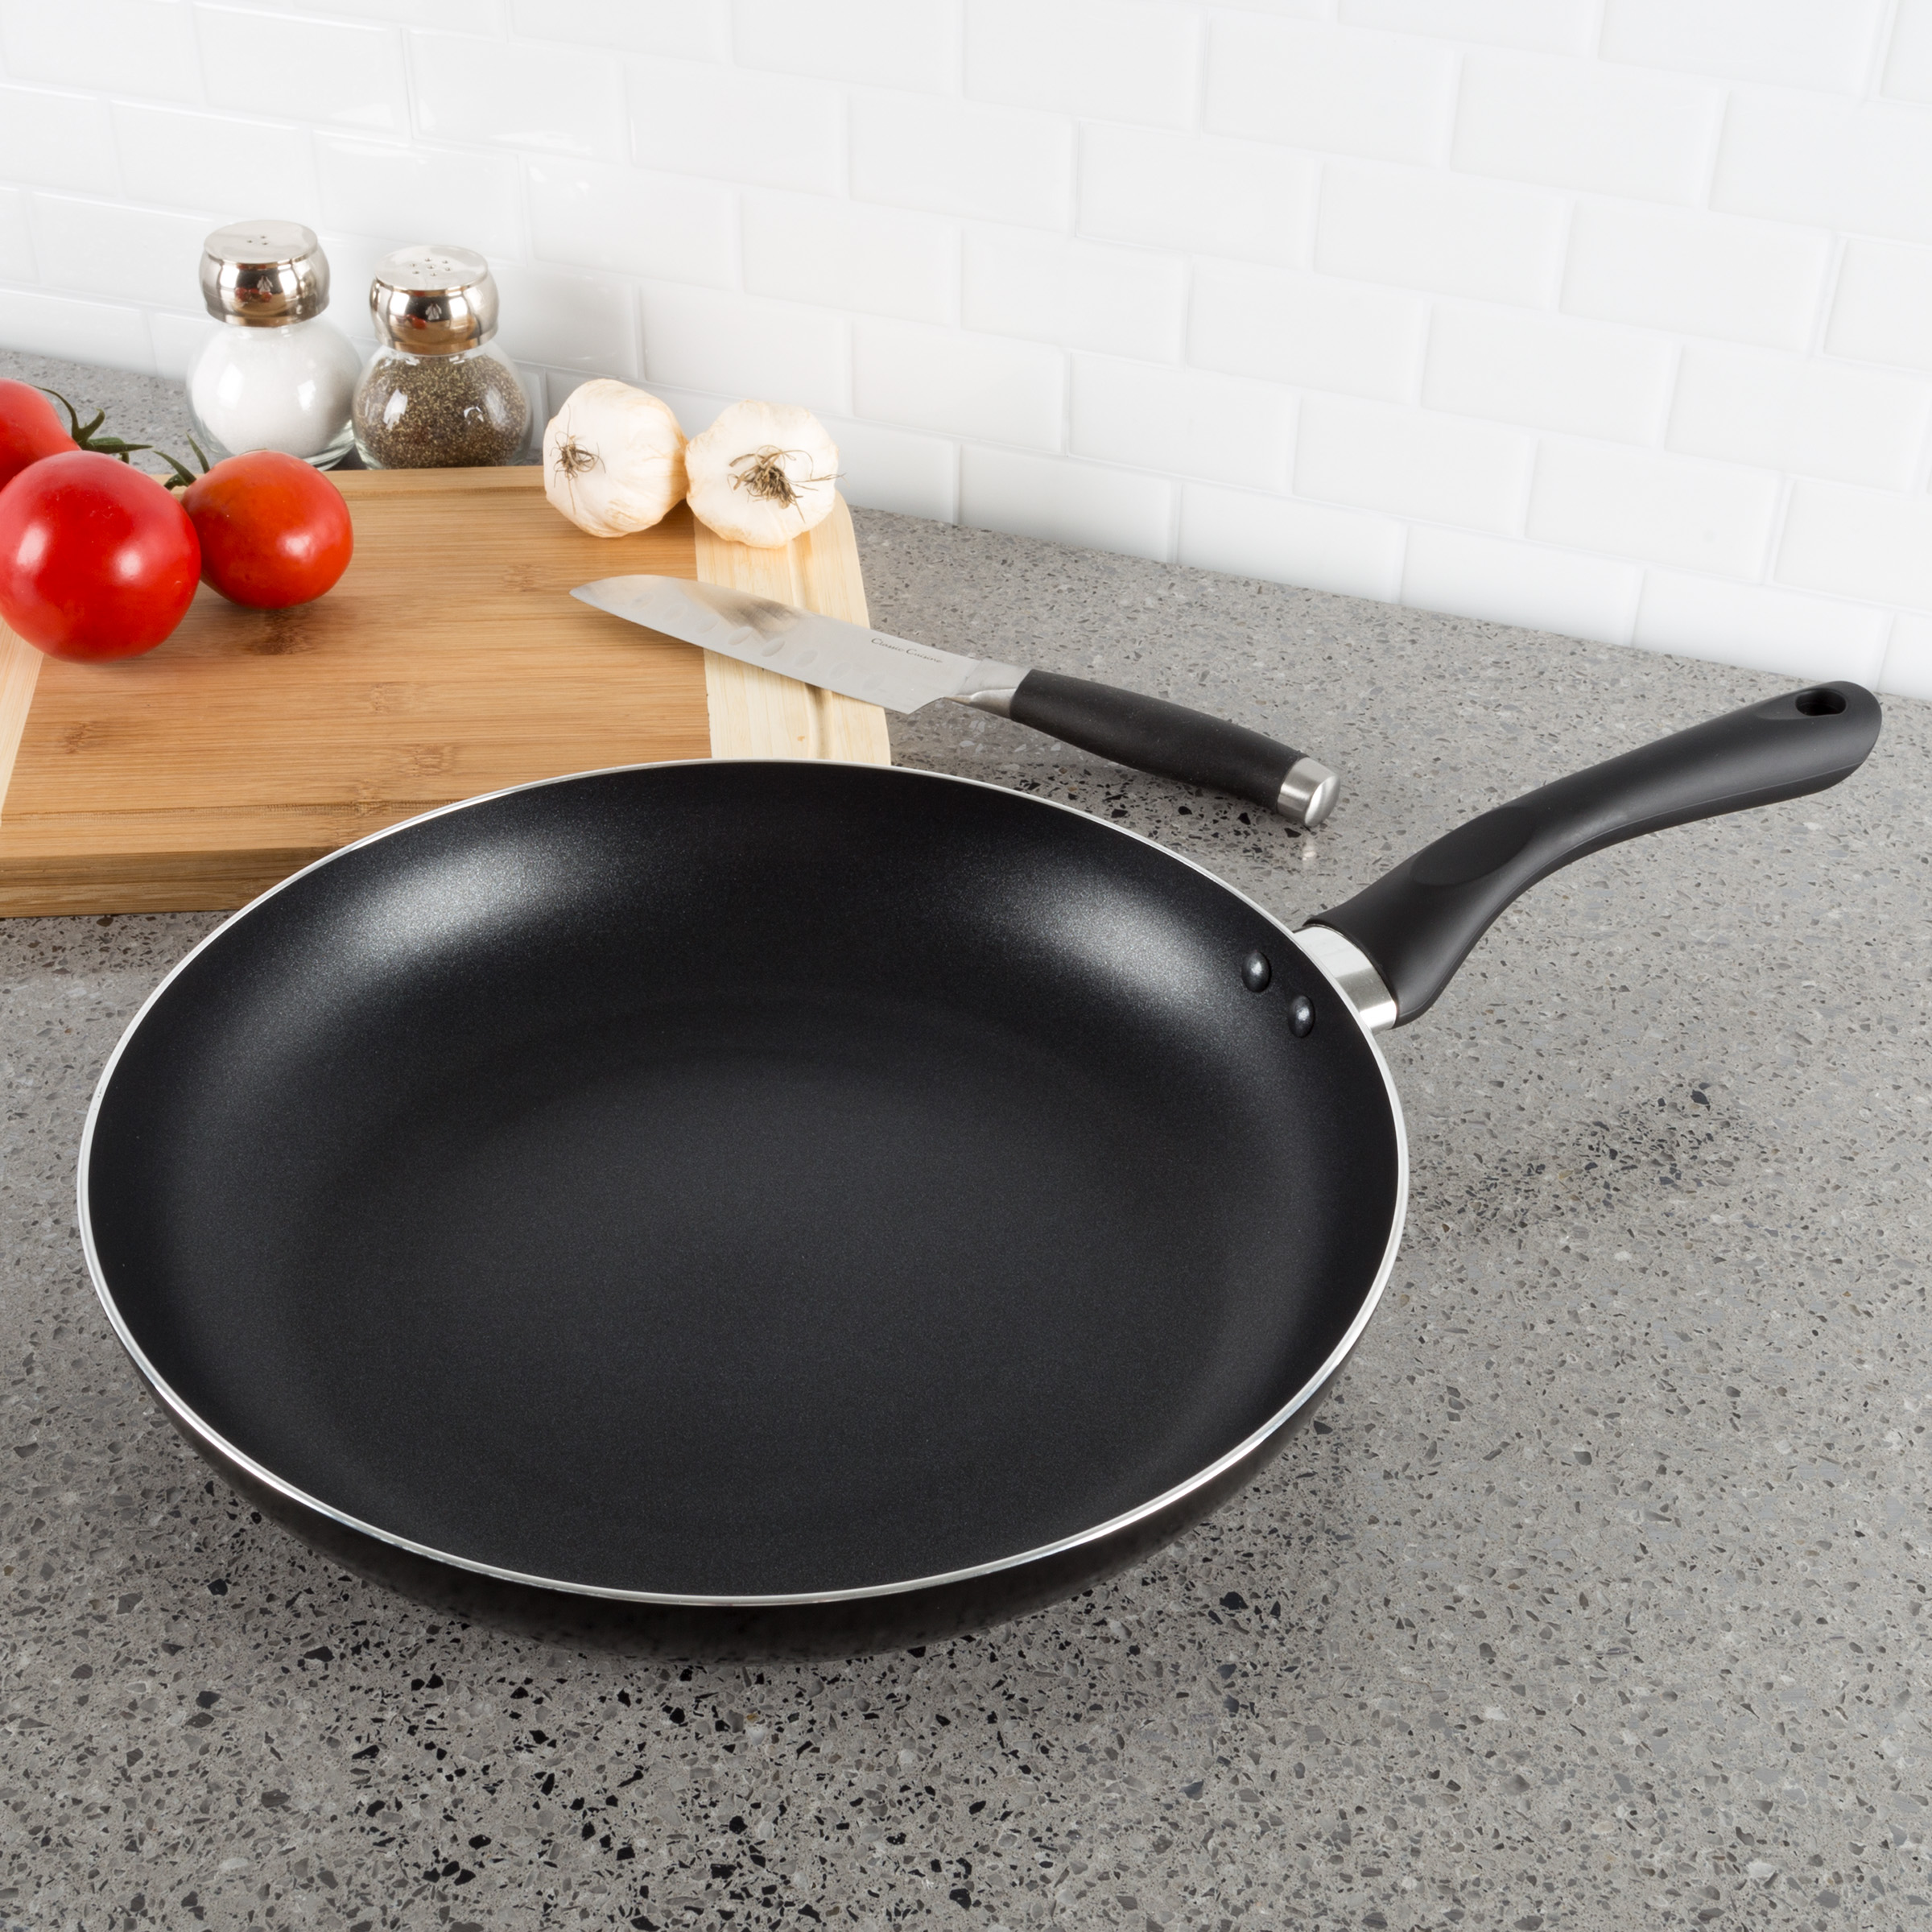 Non Stick 8? Frying Pan with Heat Safe Handle- Oven   Dishwasher Safe Allumi-Shield Cookware Skillet and... by Trademark Global